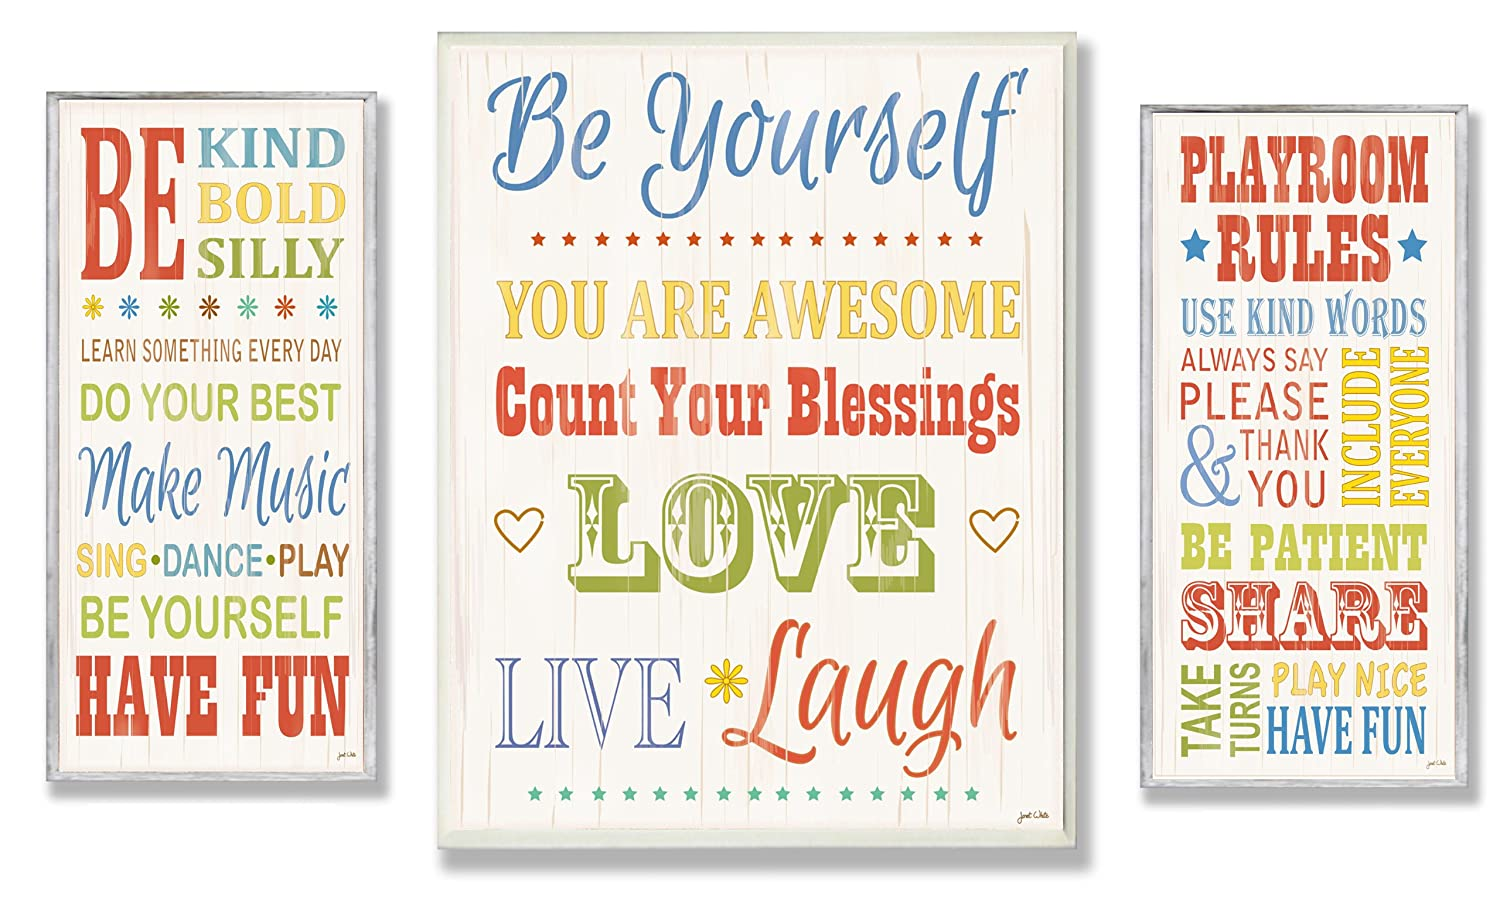 The Kids Room by Stupell Be Yourself; Be Kind; Playroom Rules 3-Pcs. Multi-Size Wall Plaque Set, n/a x n/a x n/a, Proudly Made in USA zrp-102